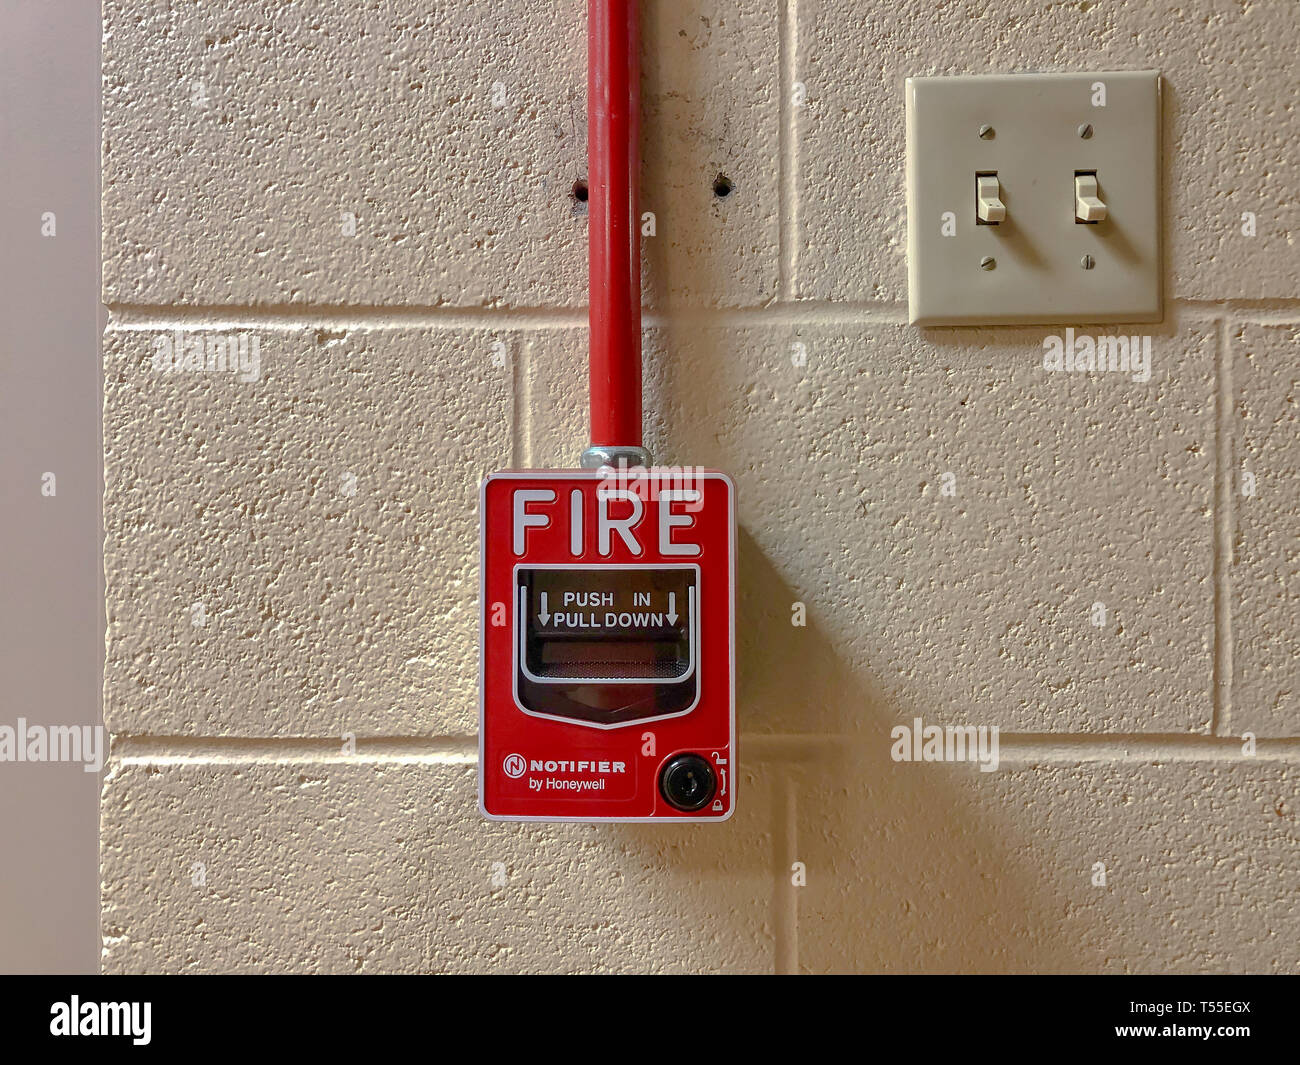 Honeywell Notifier Fire Alarm Handle Pull switch on the white wall as background for emergency case at the new factory building Stock Photo